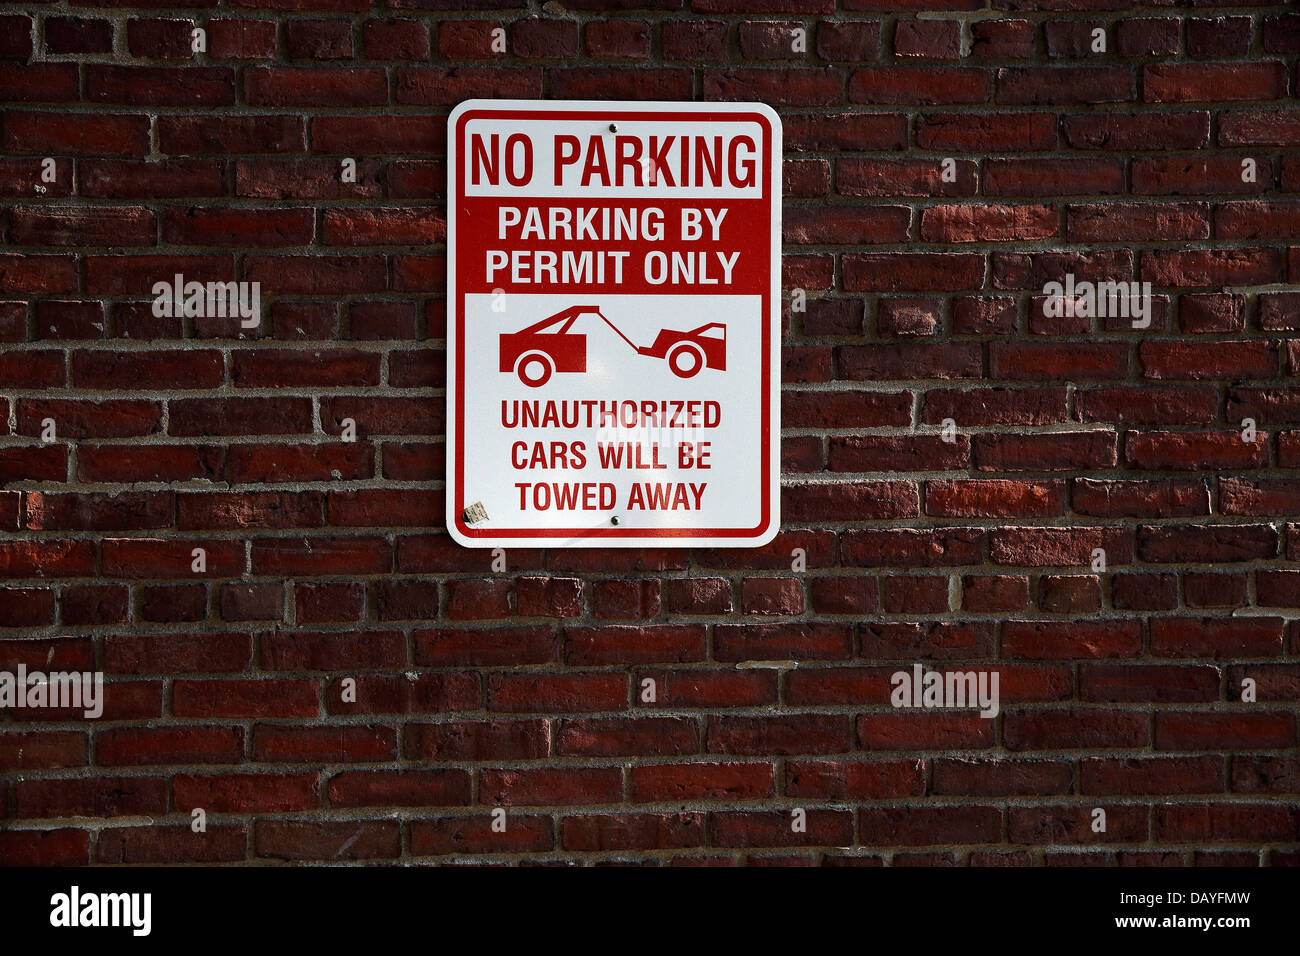 No parking tow zone sign - Stock Image